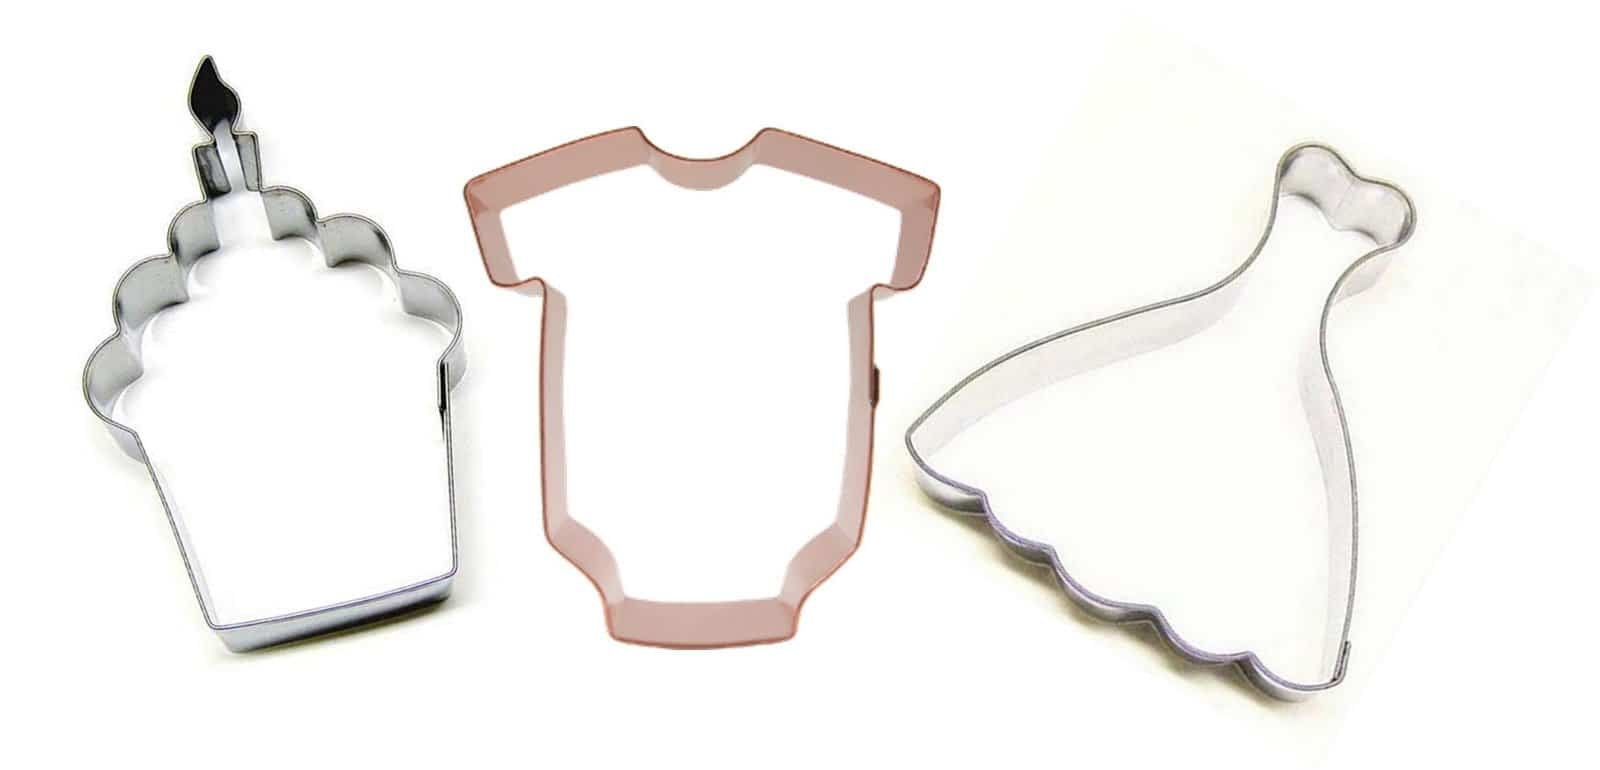 Celebrations birthday shapes baby and wedding shapes for example